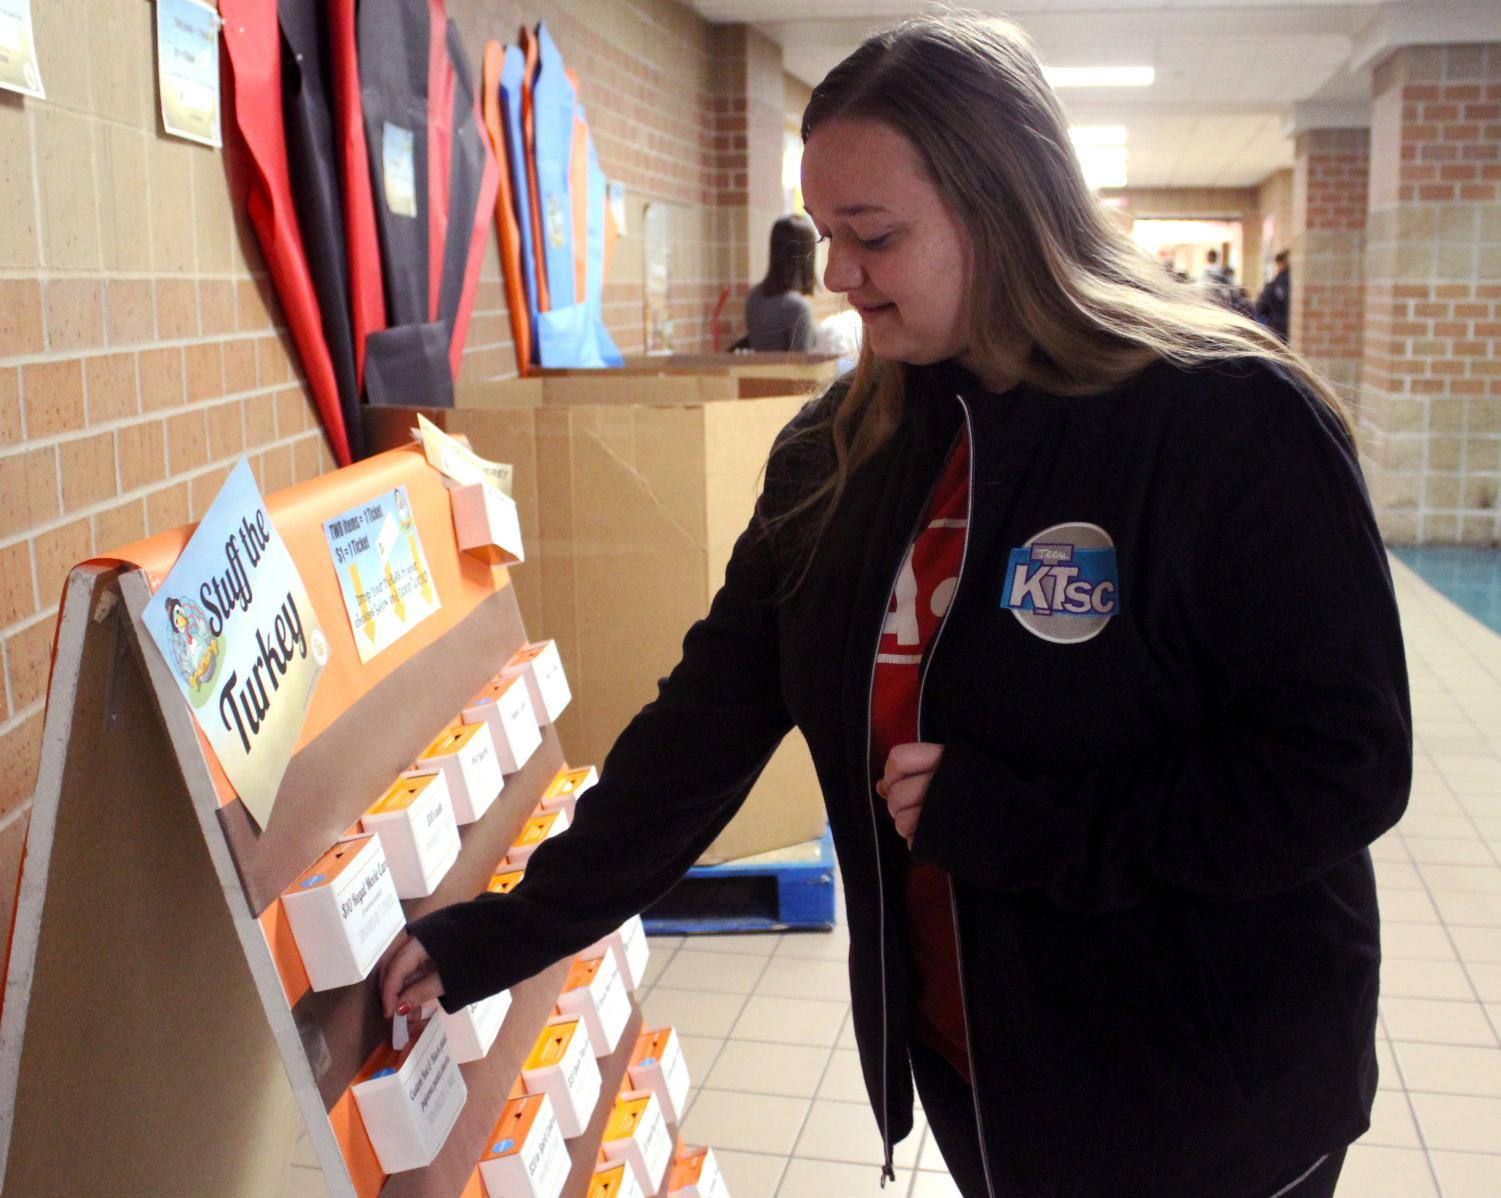 Junior Alahni Caldwell places a ticket in one of the teacher's prize boxes. There are a variety of prizes offered, from gift cards to food.